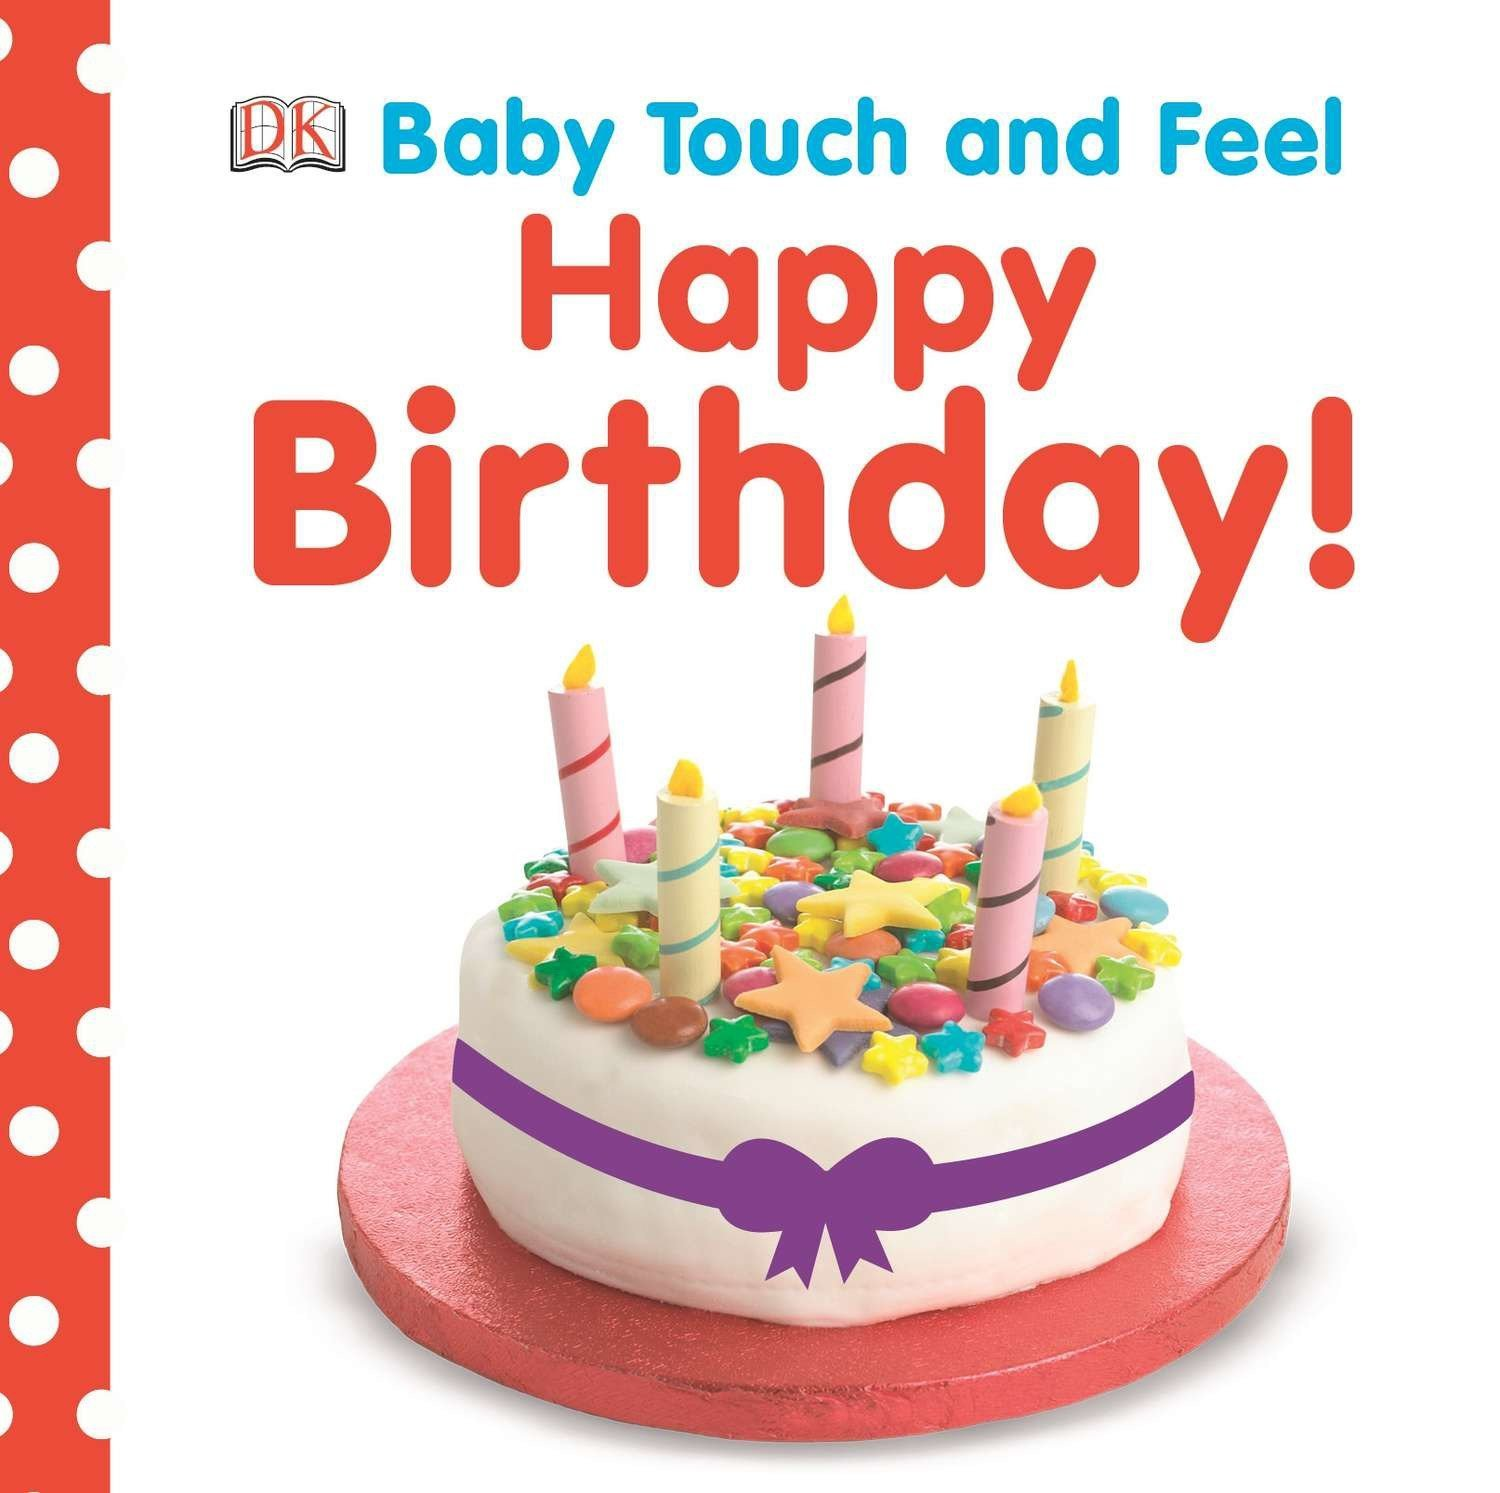 Amazon Com Baby Touch And Feel Happy Birthday 9781465414311 Dk Books